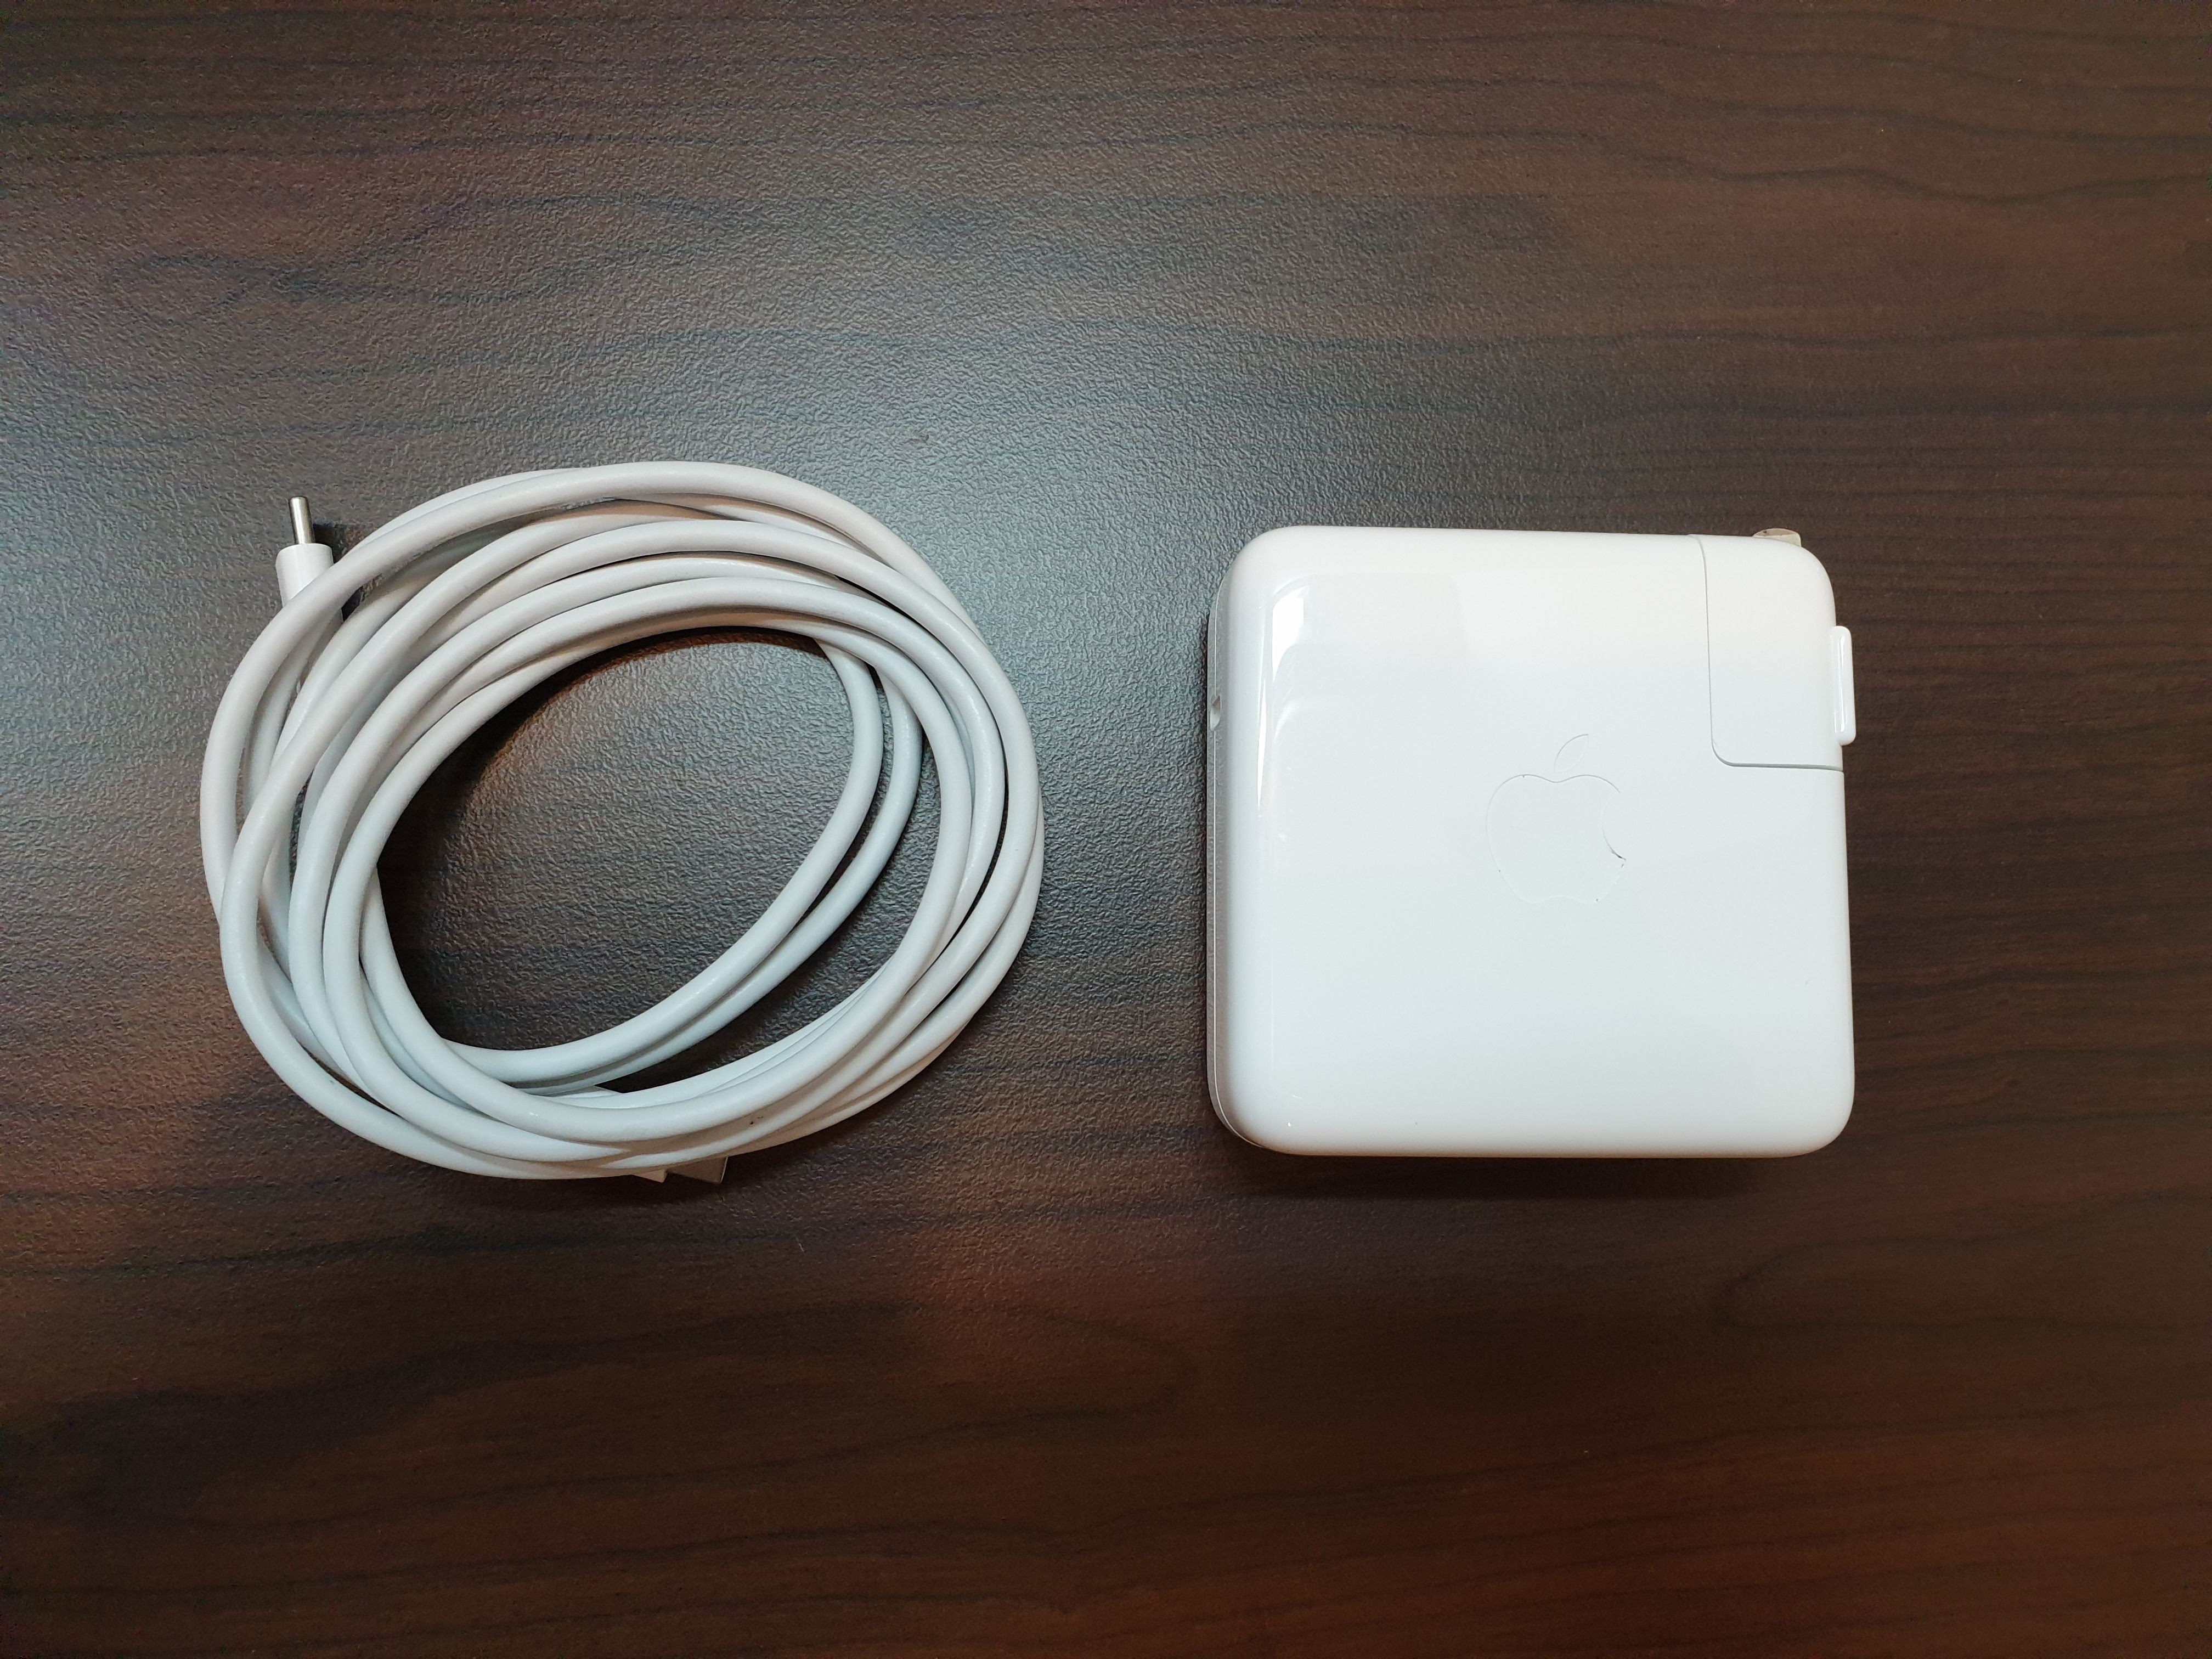 MacBook Pro 13-inch 2018 Charger